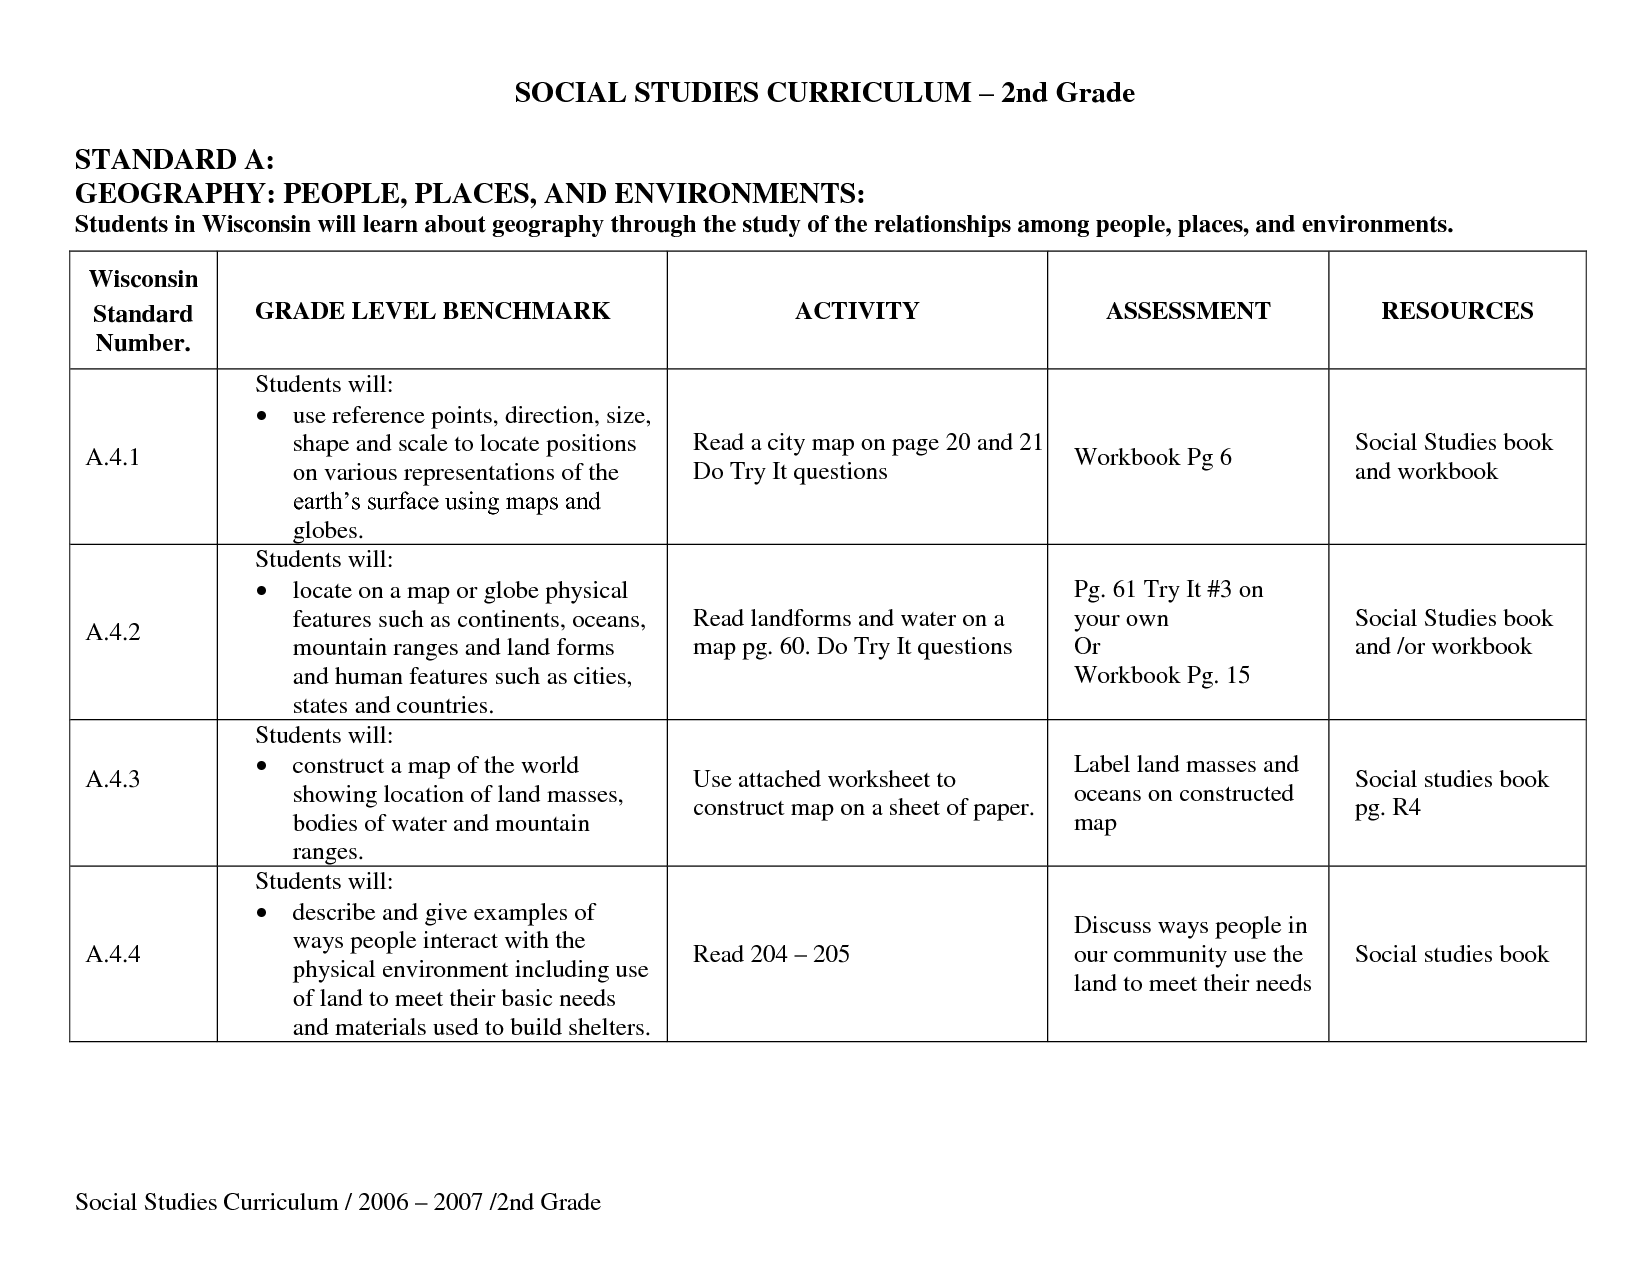 Worksheets Social Studies 5th Grade Worksheets social studies worksheets for 5th grade plustheapp of printables studies